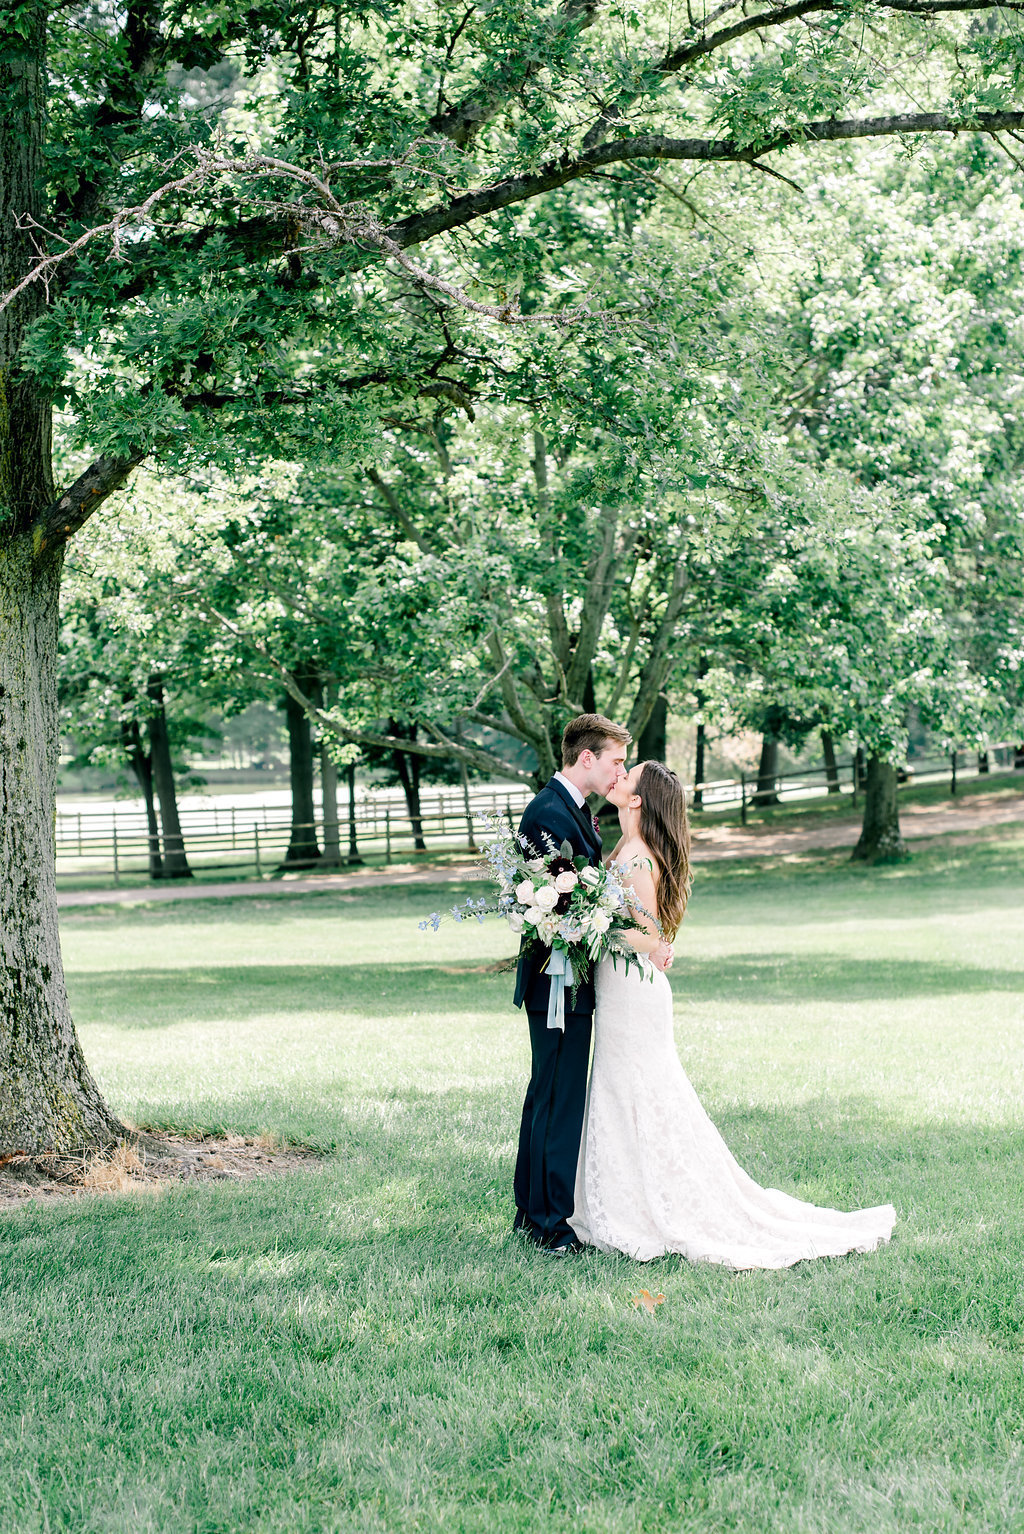 Lindsey&Brant_Married-173